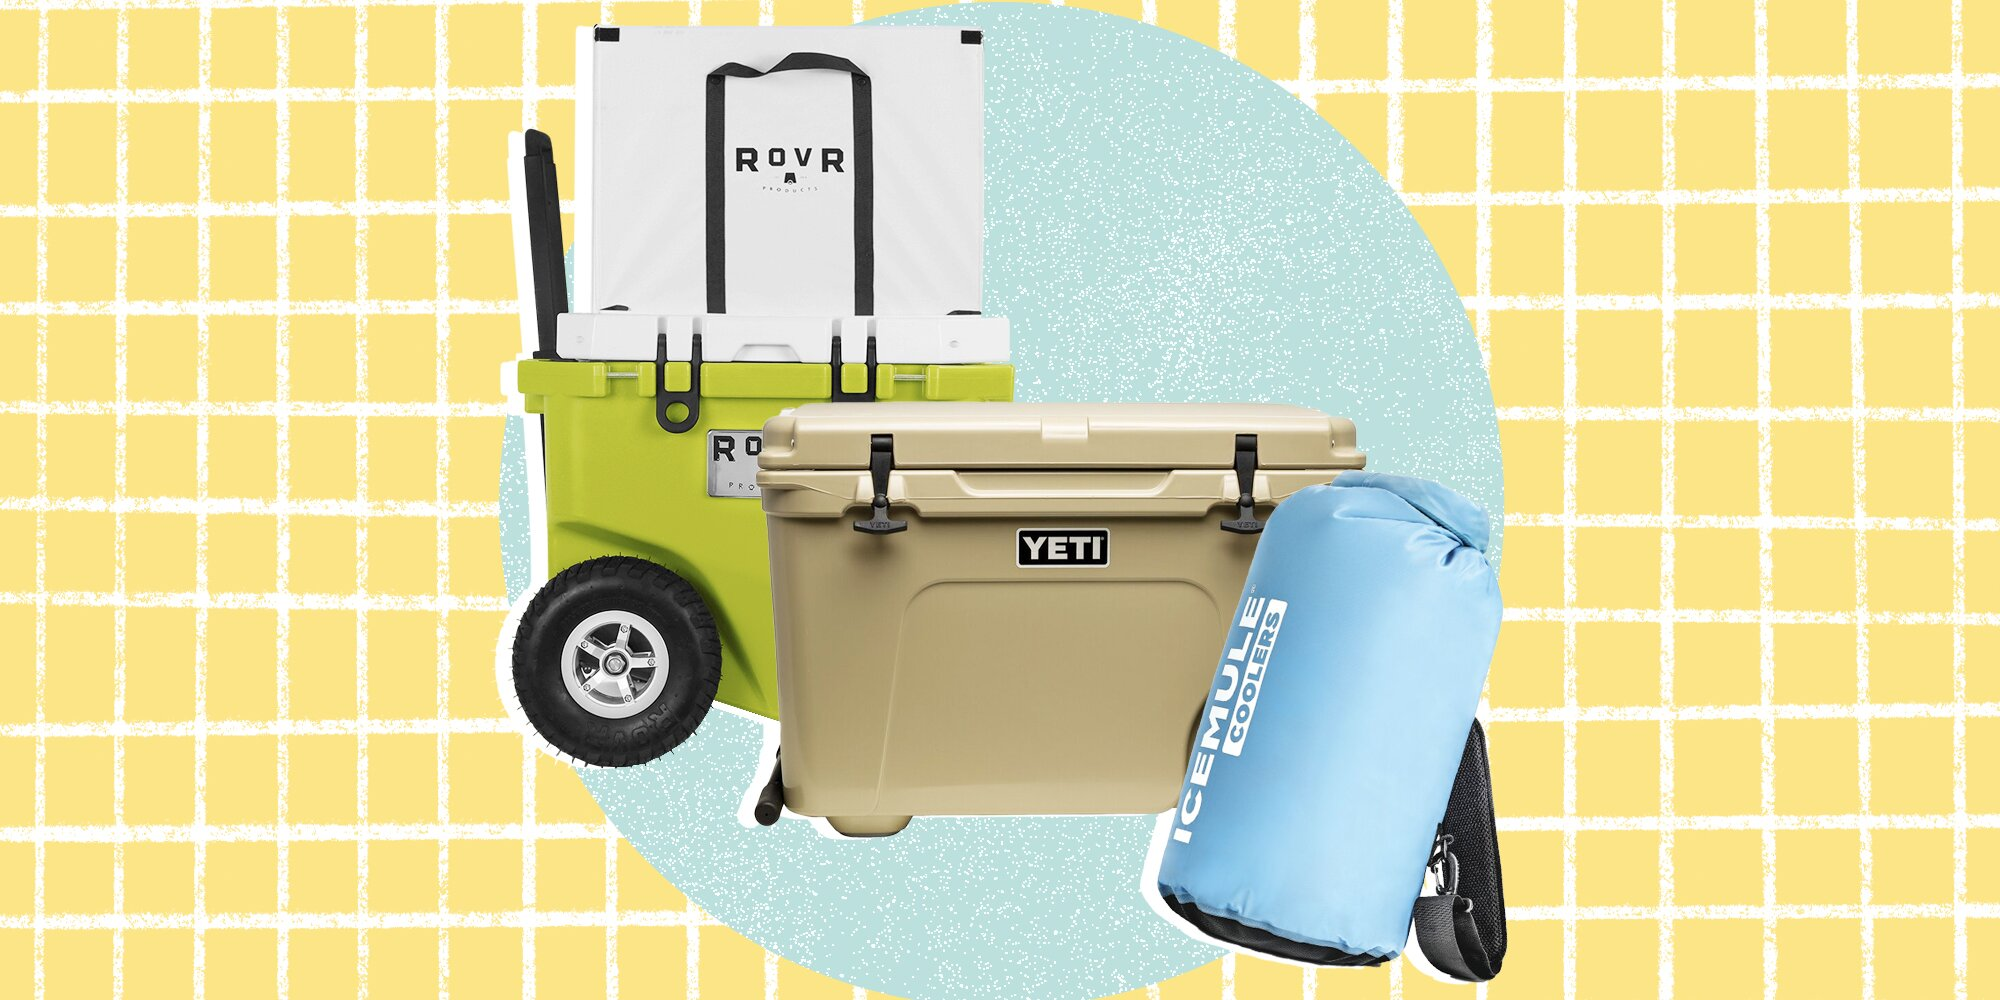 The Best Beach Coolers to Keep Your Food and Drinks Cold